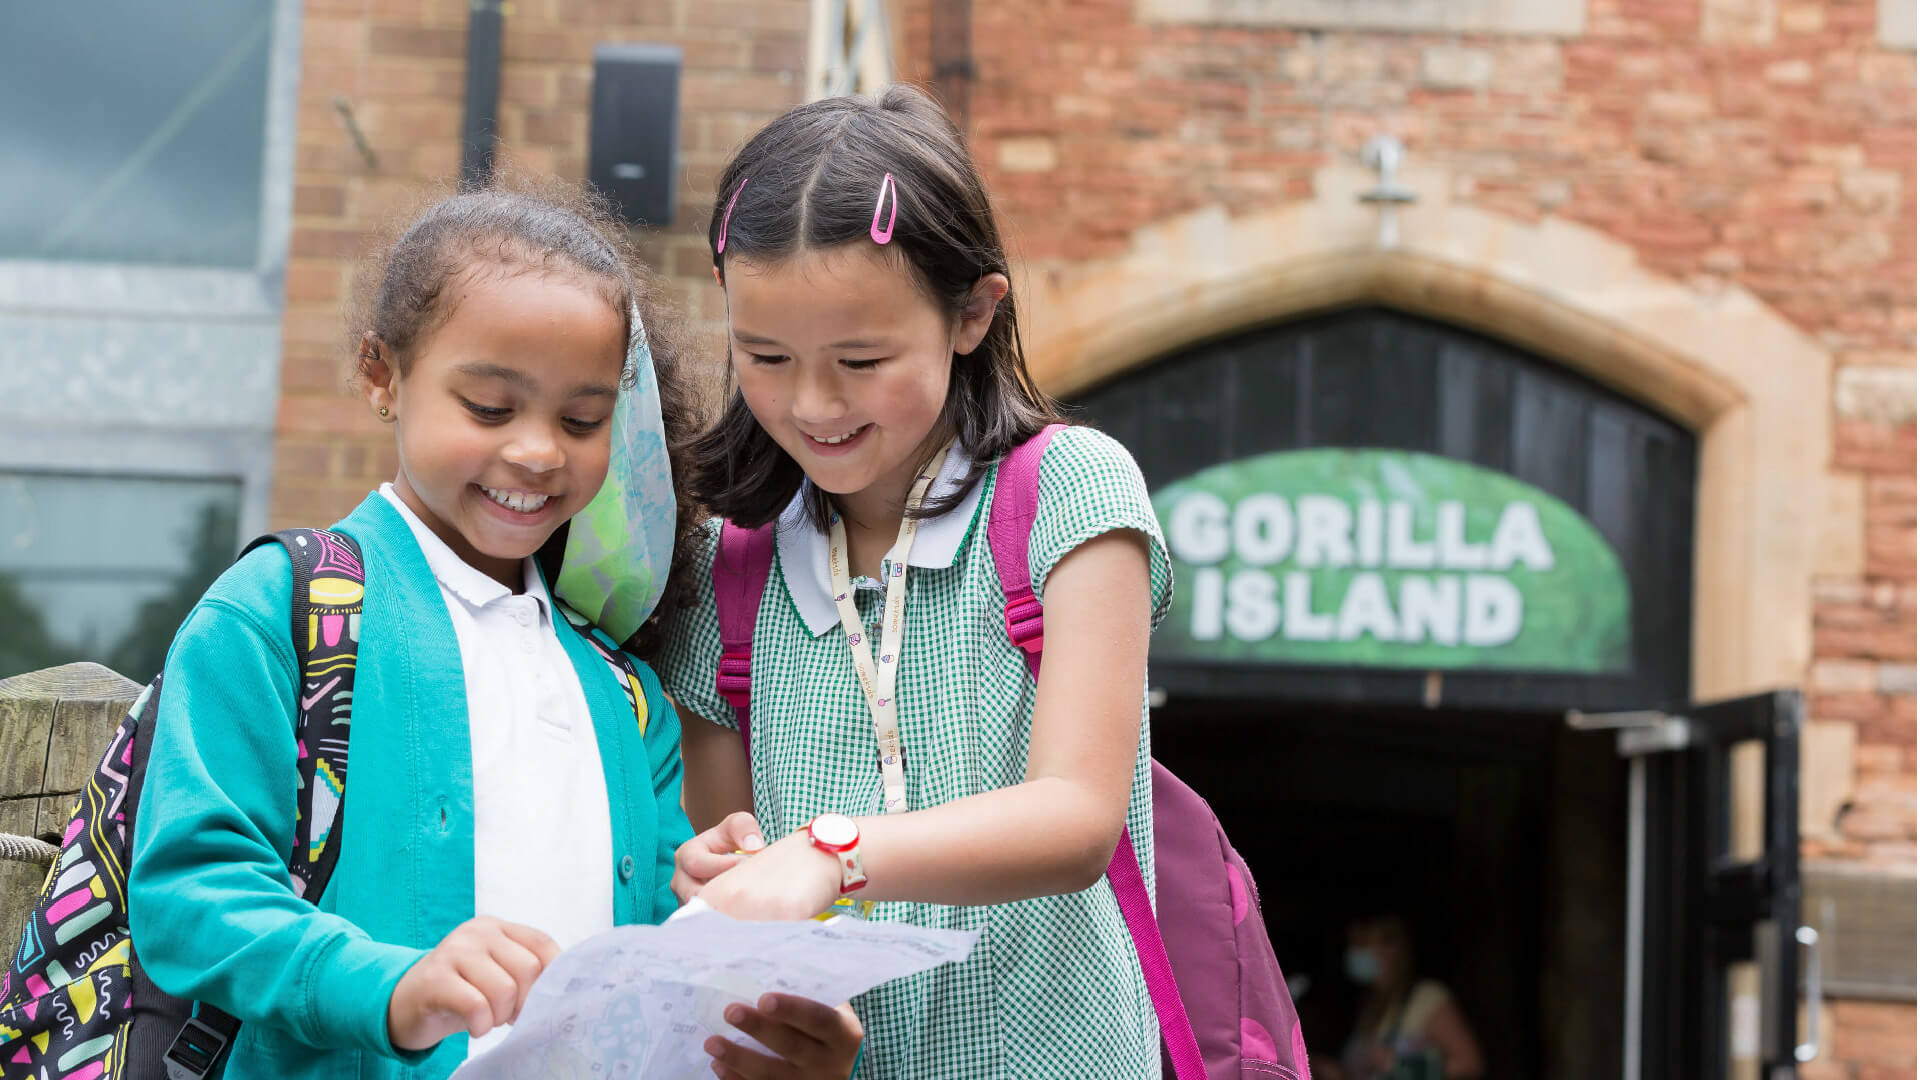 Two young primary school girls looking at a trail leaflet in front of Gorilla Island at Bristol Zoo Gardens